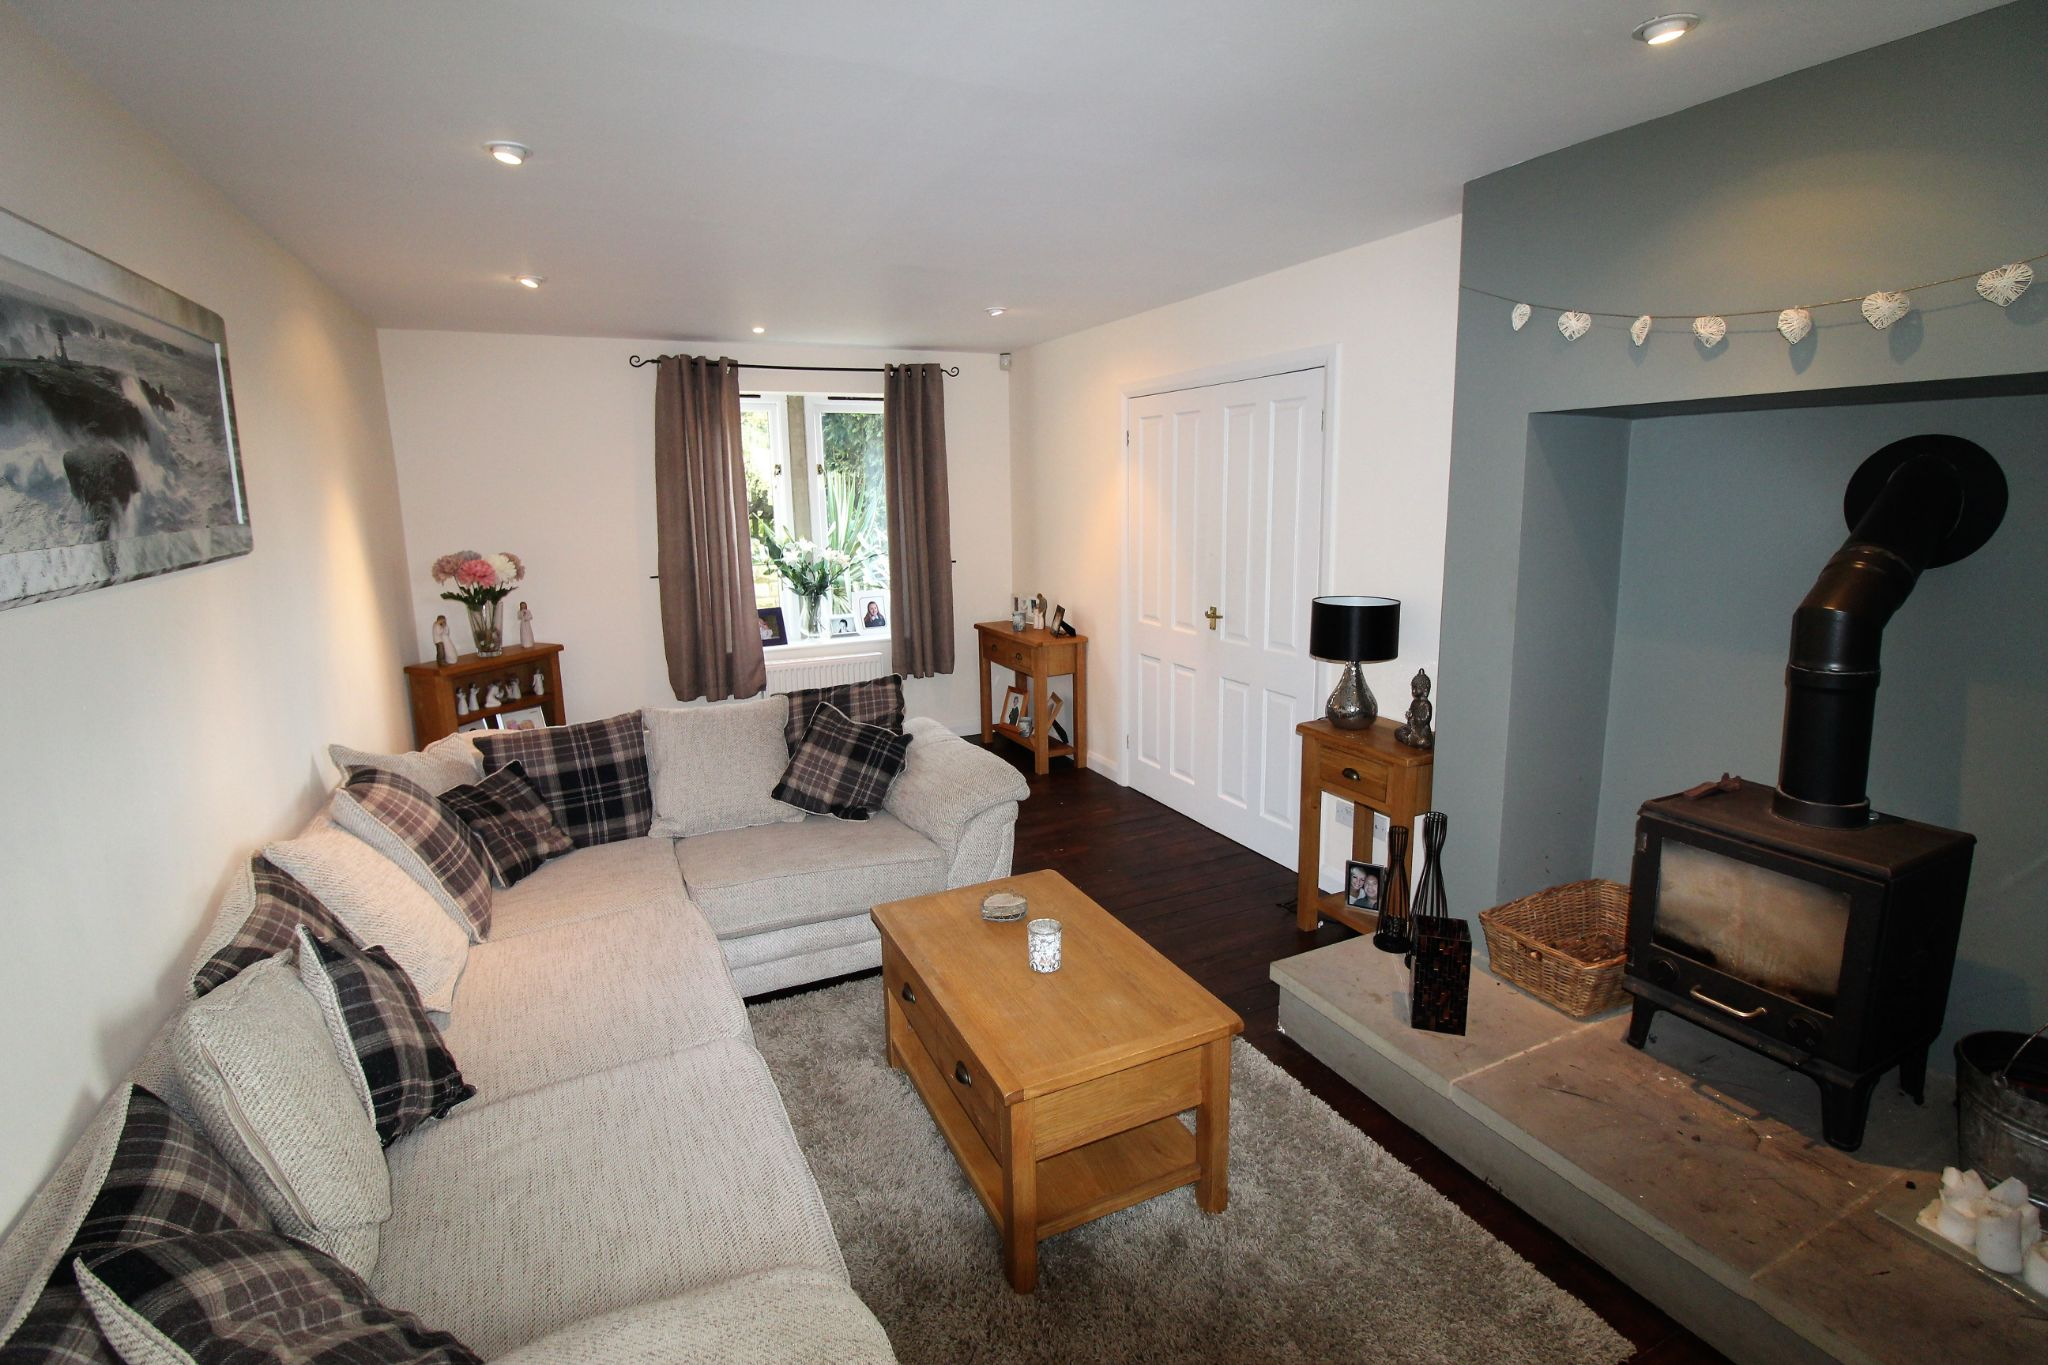 3 bedroom detached house Let in Brighouse - Family lounge area